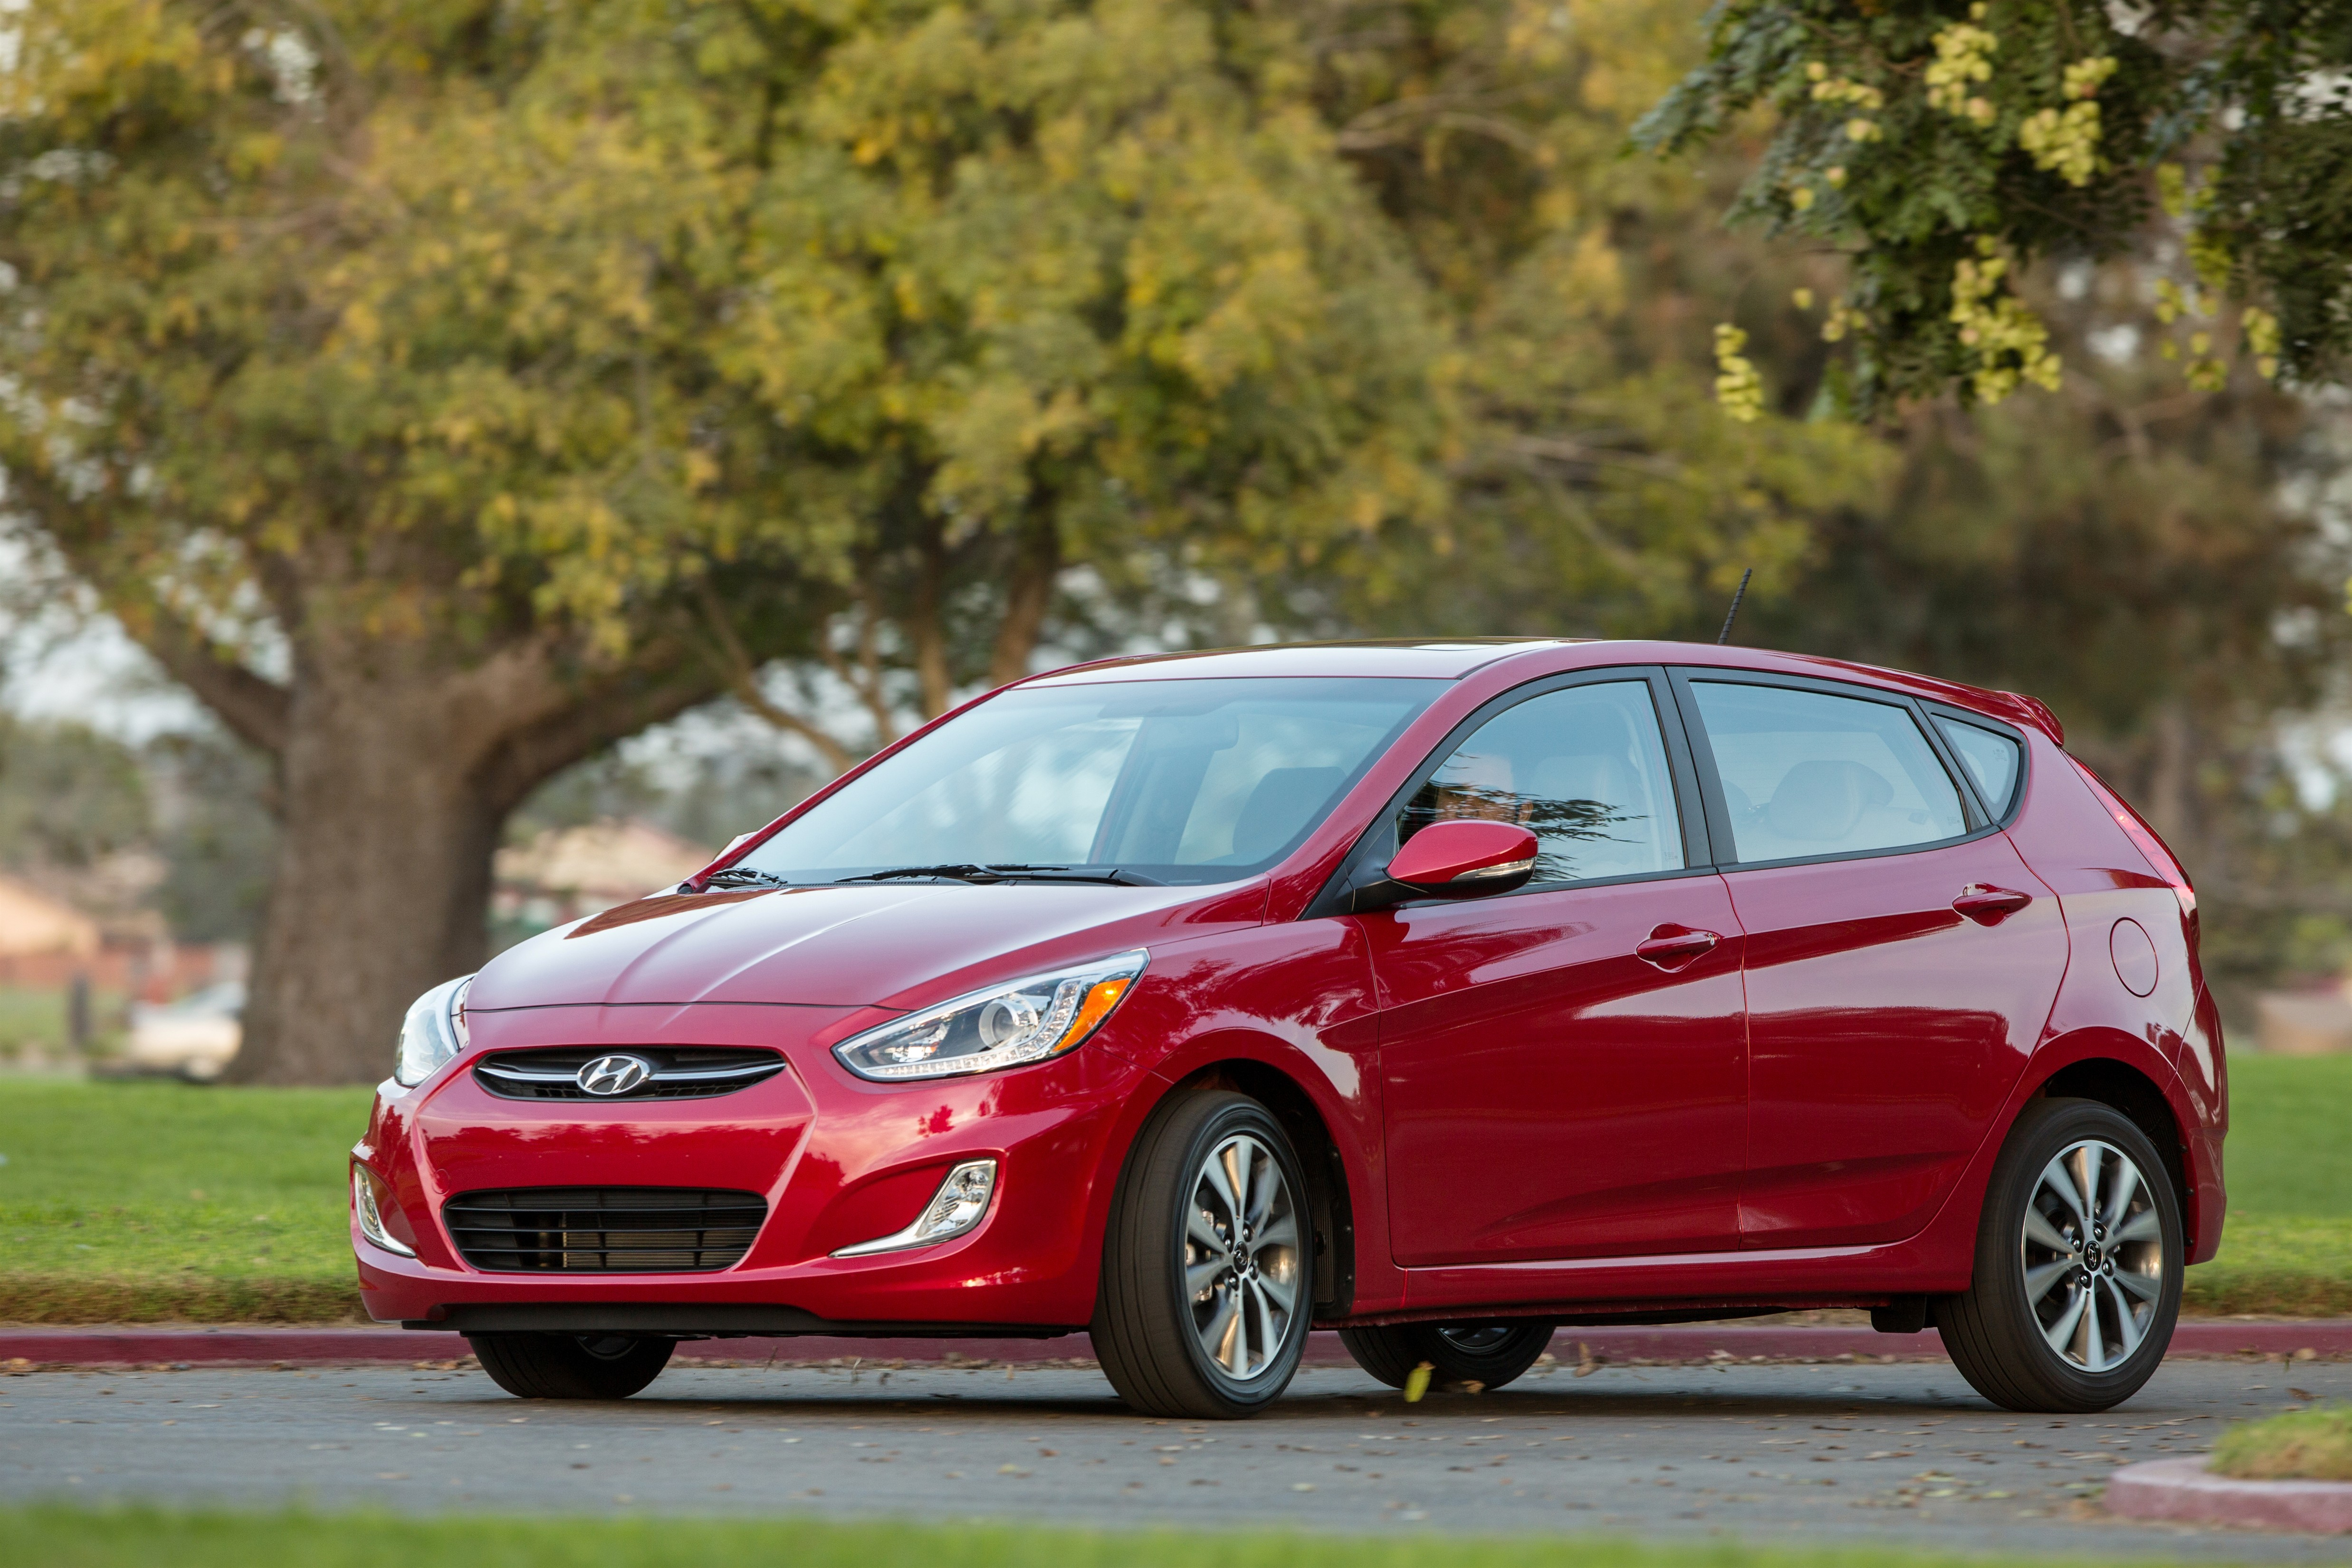 Hyundai Motor Co.'s Accent topped the subcompact car market in China in terms of sales last month. (image: Hyundai Motor)